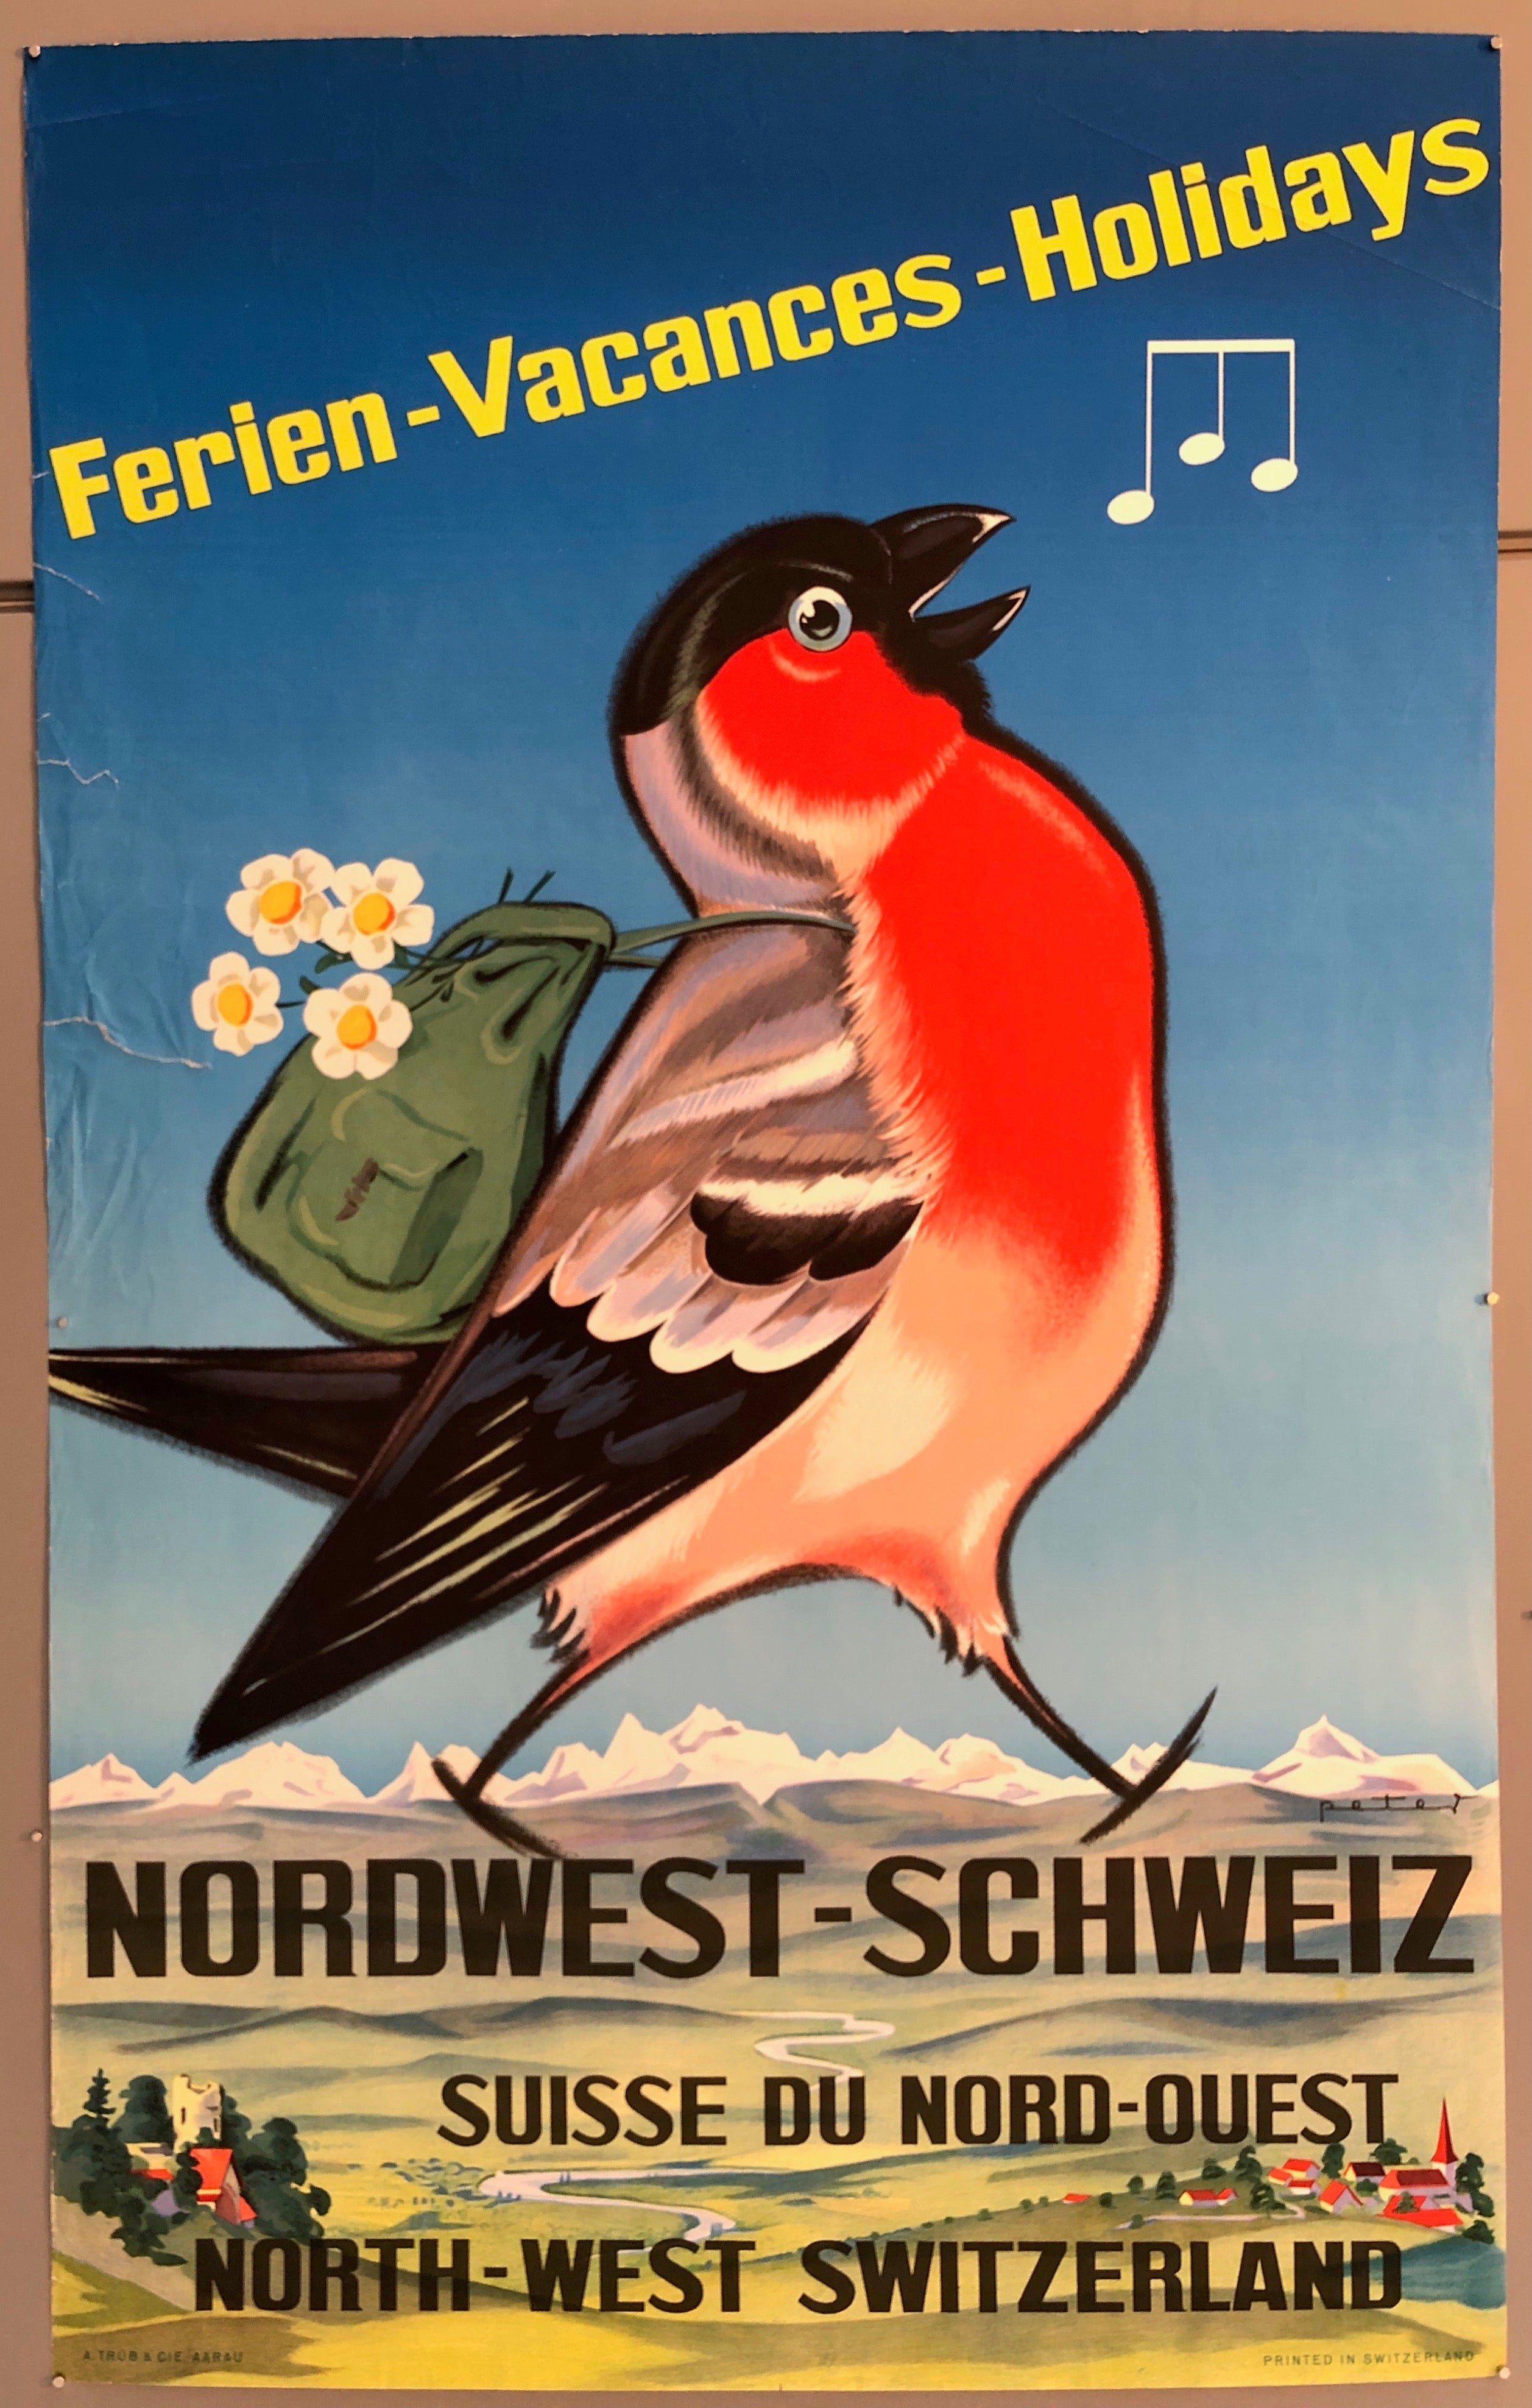 Poster of a red-bellied bird with a green backpack full of white flower